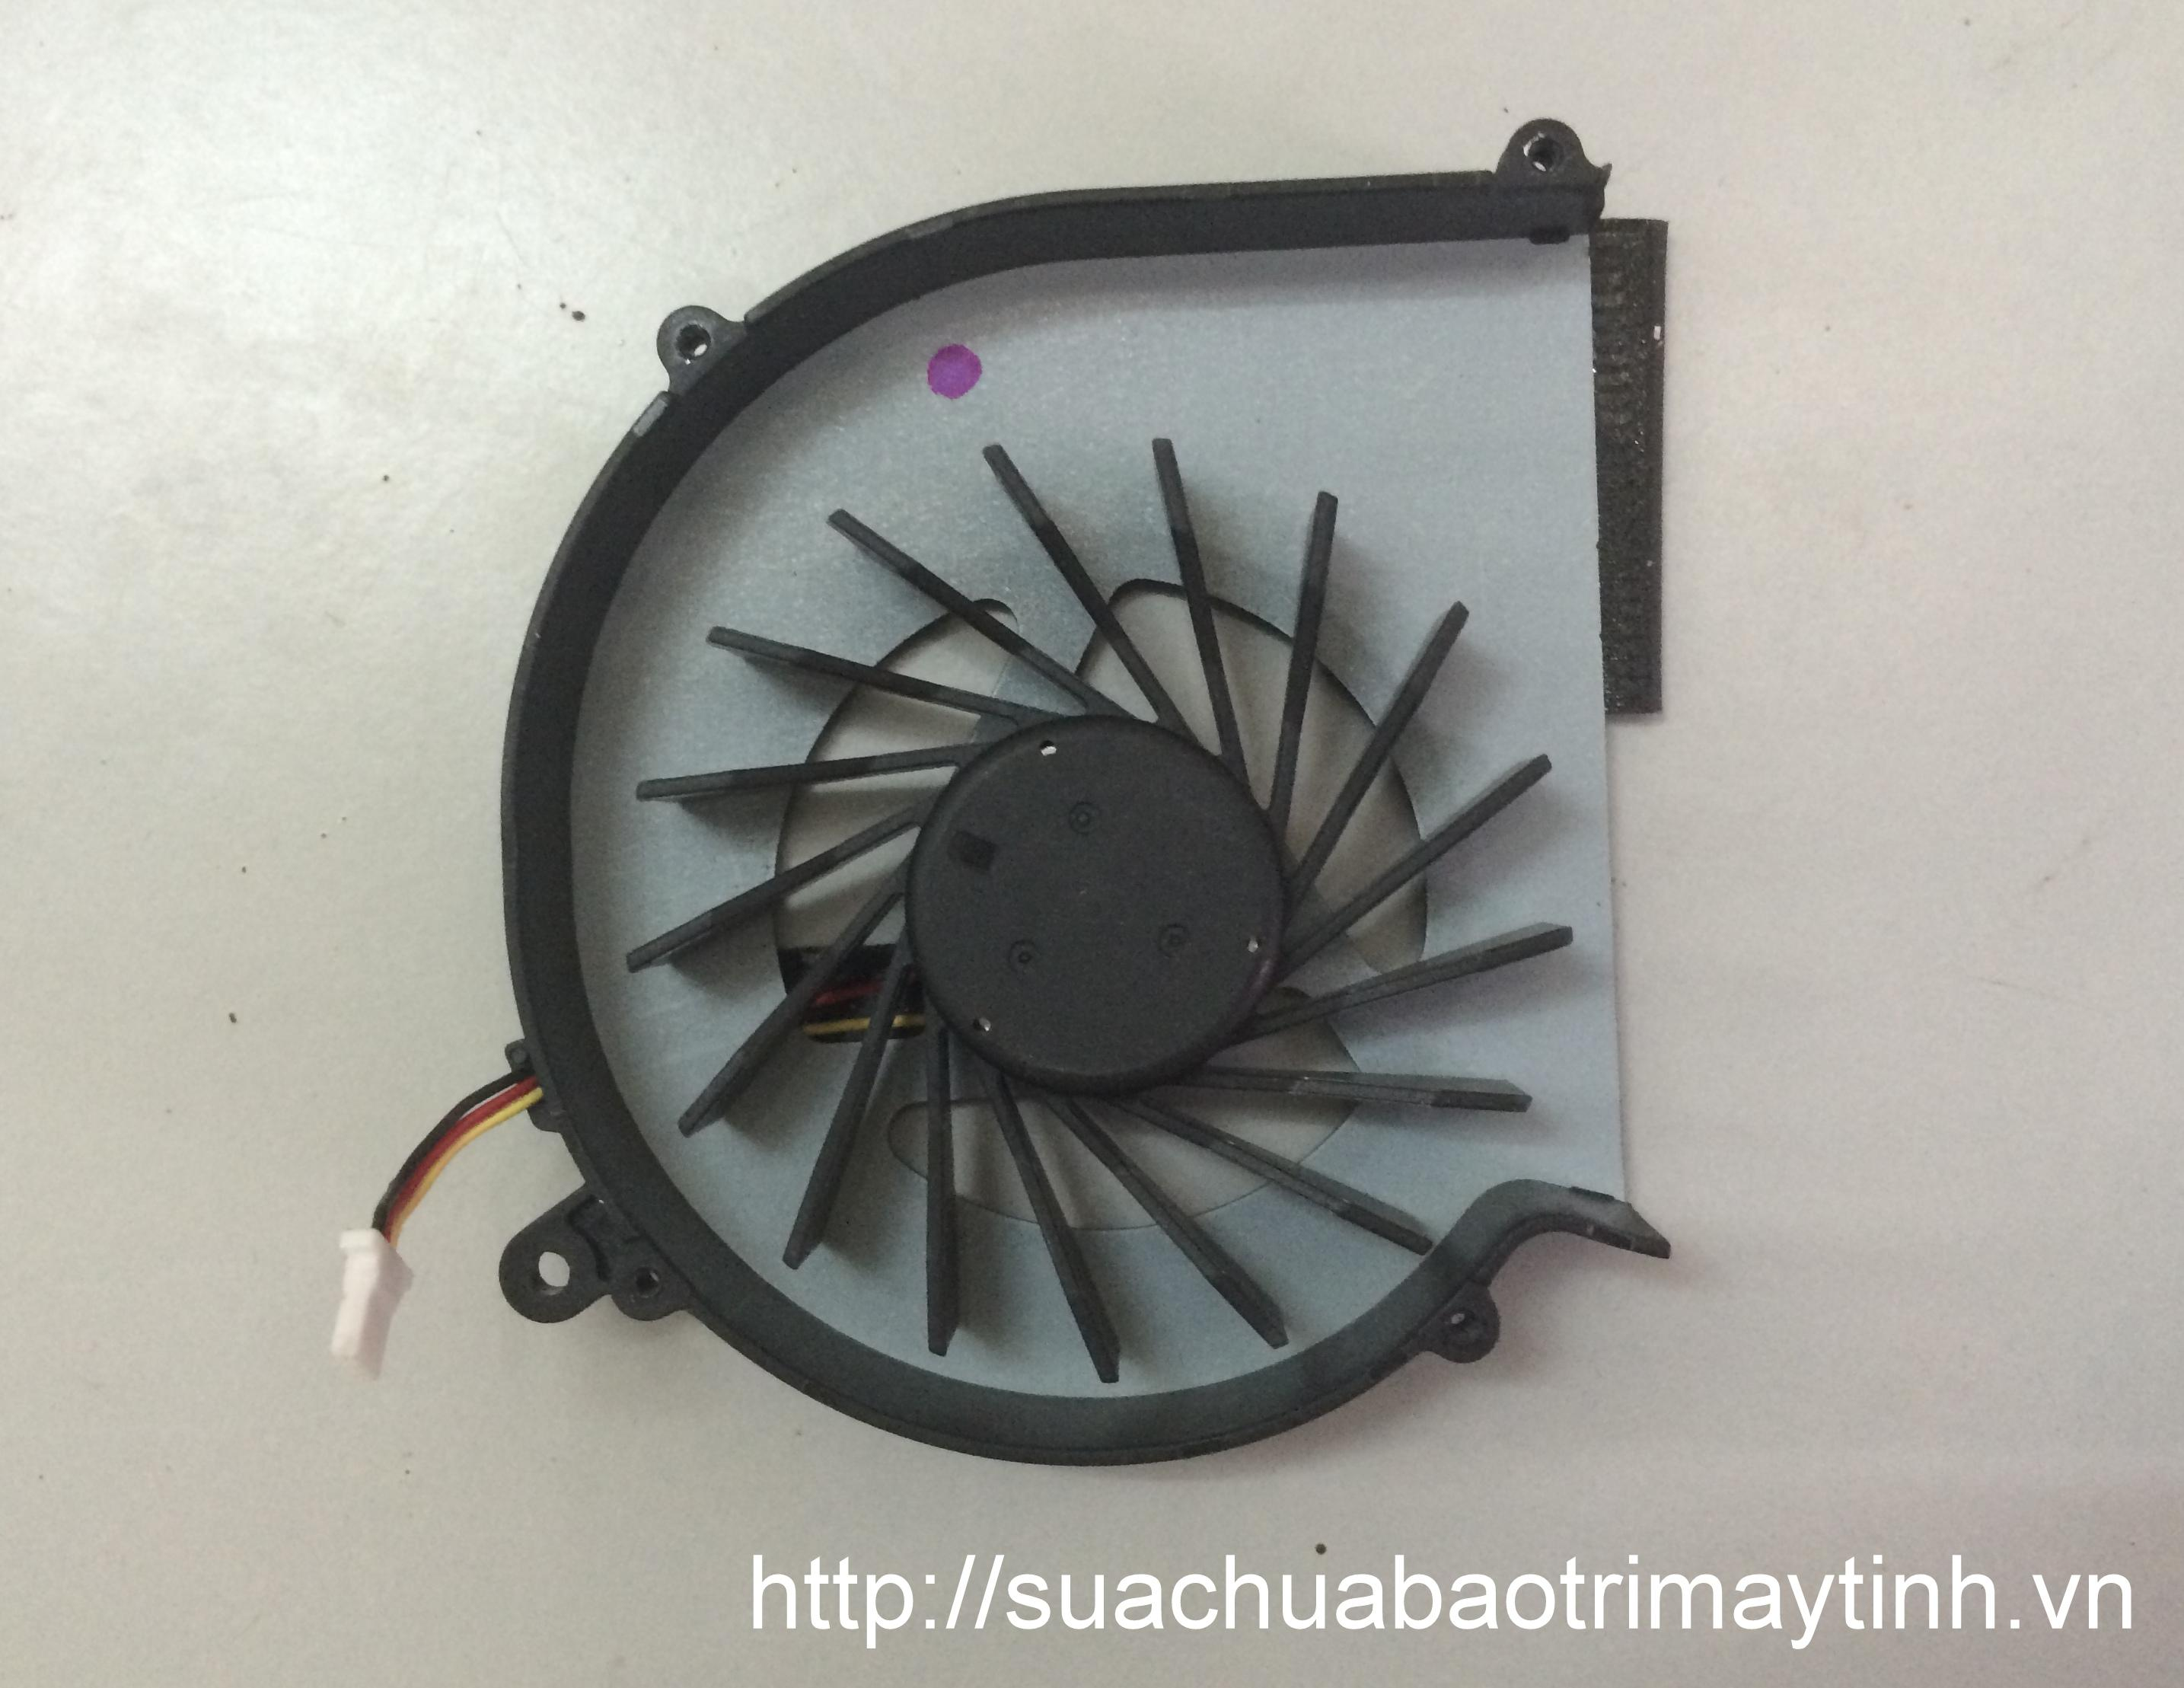 Fan cpu laptop hp 630.JPG